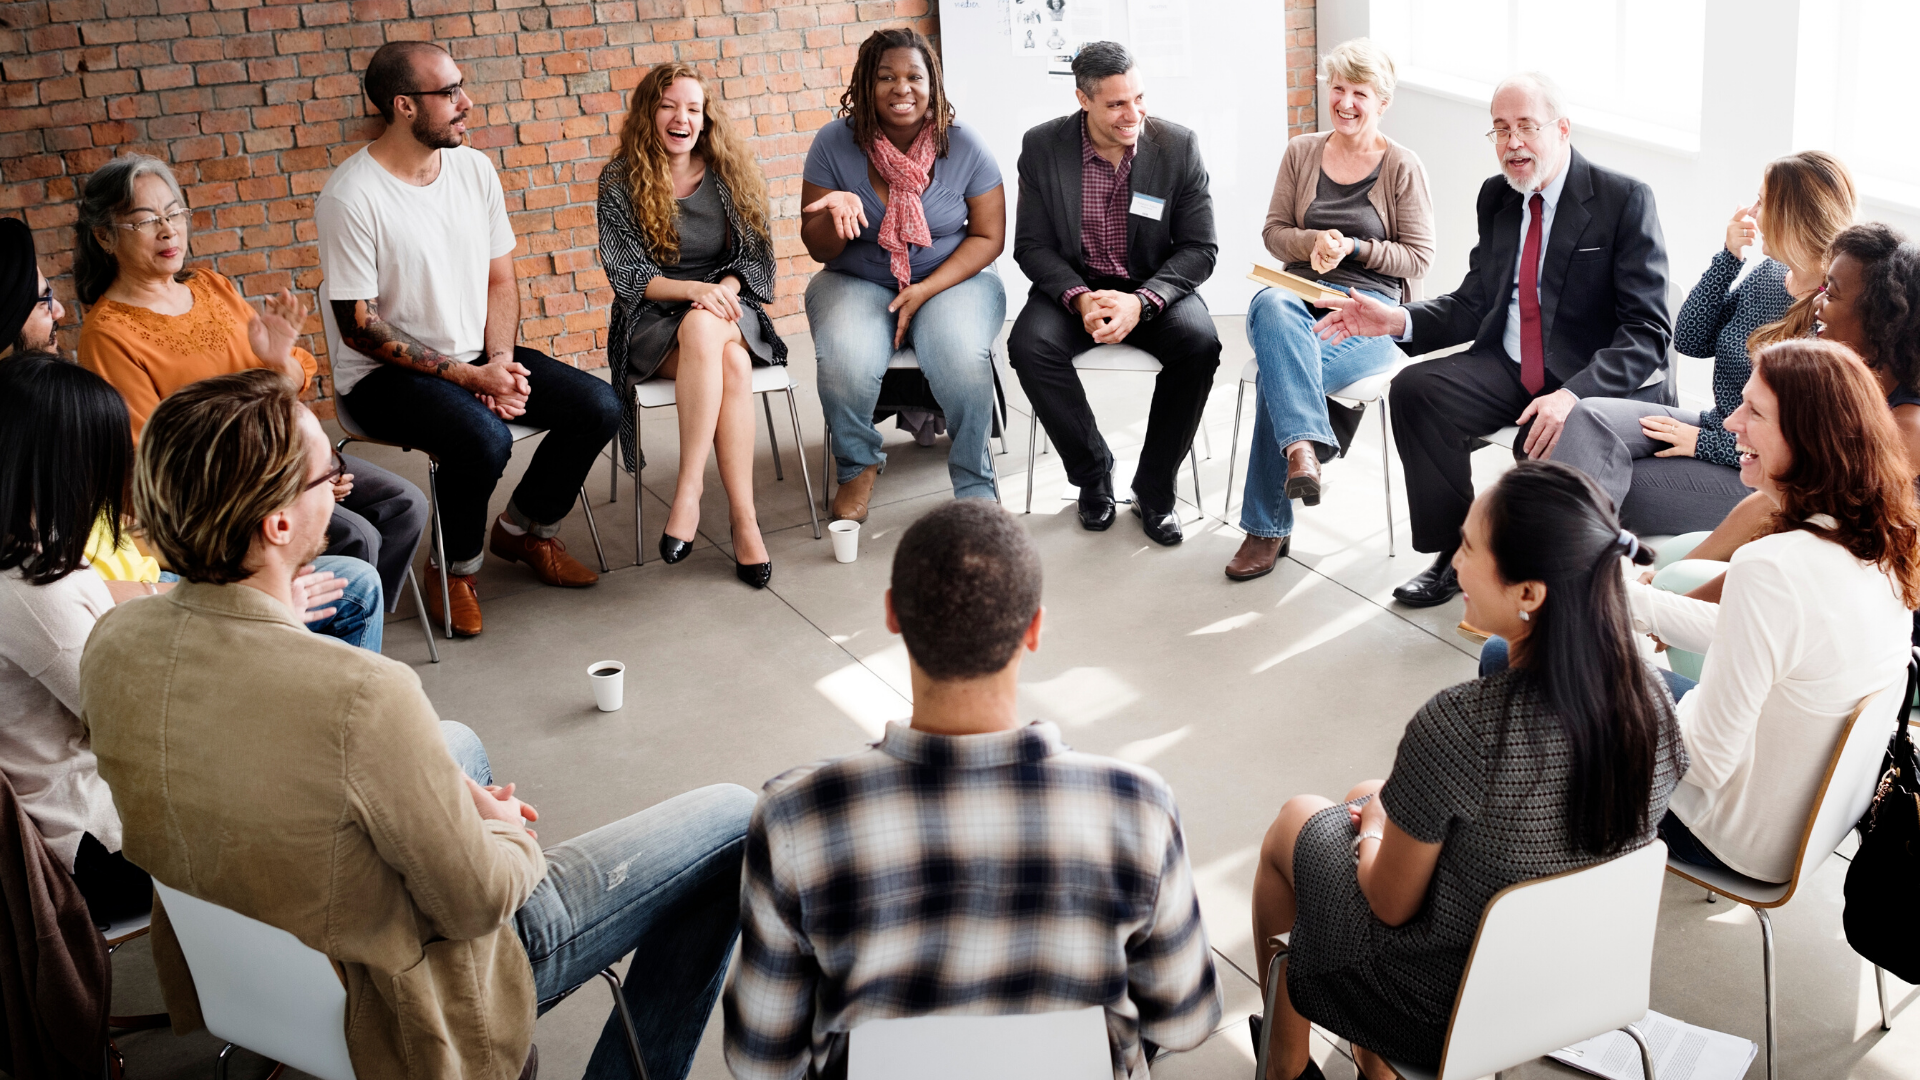 interactive team exercise of diverse people sitting in a circle